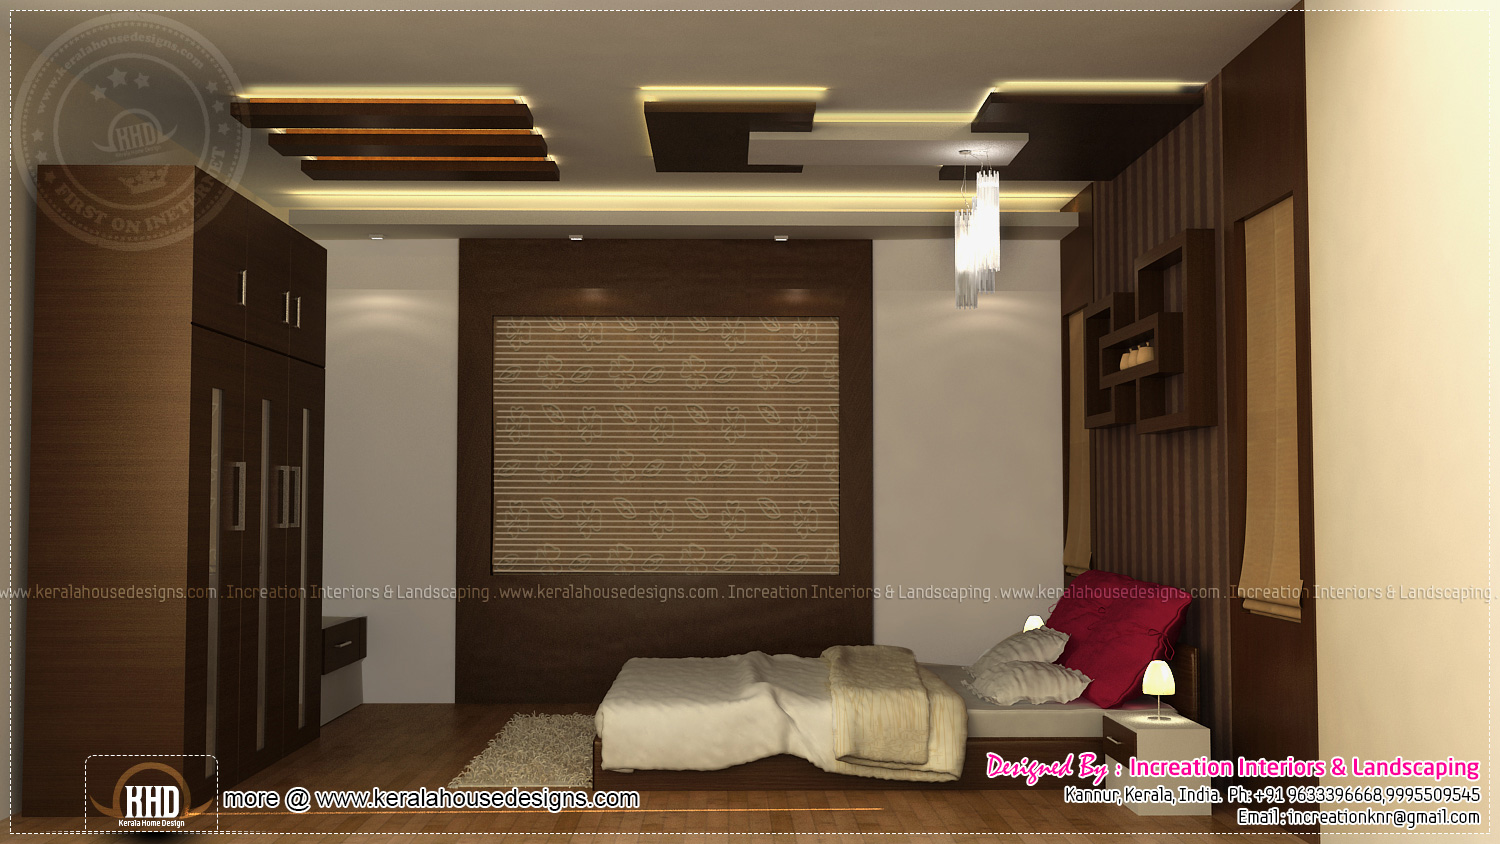 Interior designs by increation kannur kerala home for Model bedroom interior design